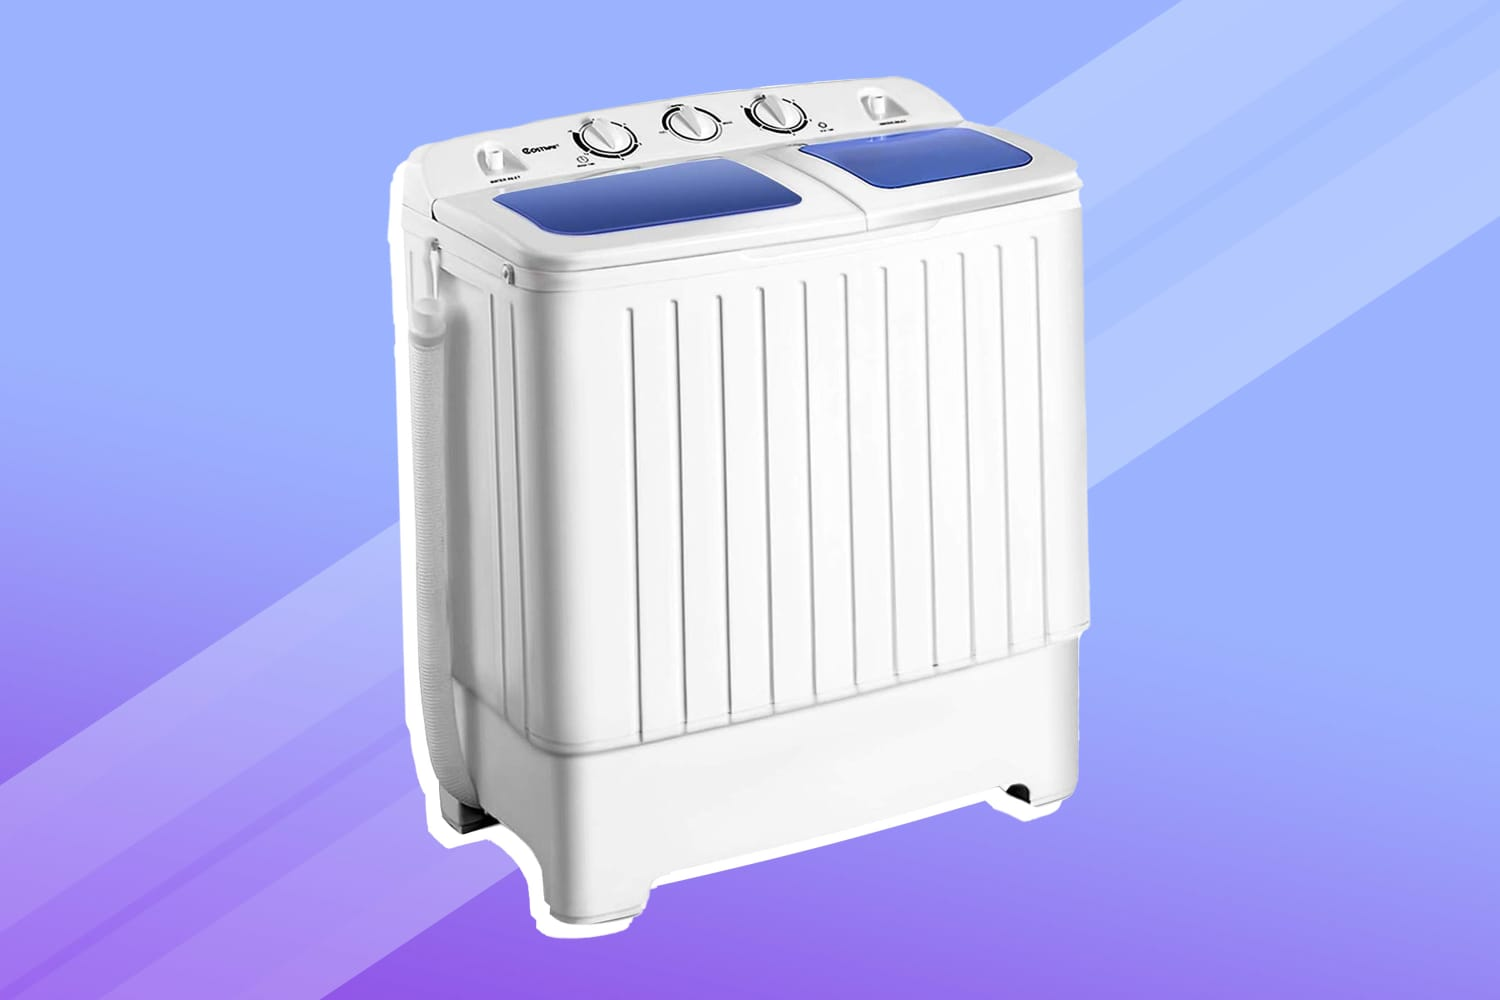 I'm Convinced This $115 Portable Washing Machine Is the Best Thing a Renter Can Buy